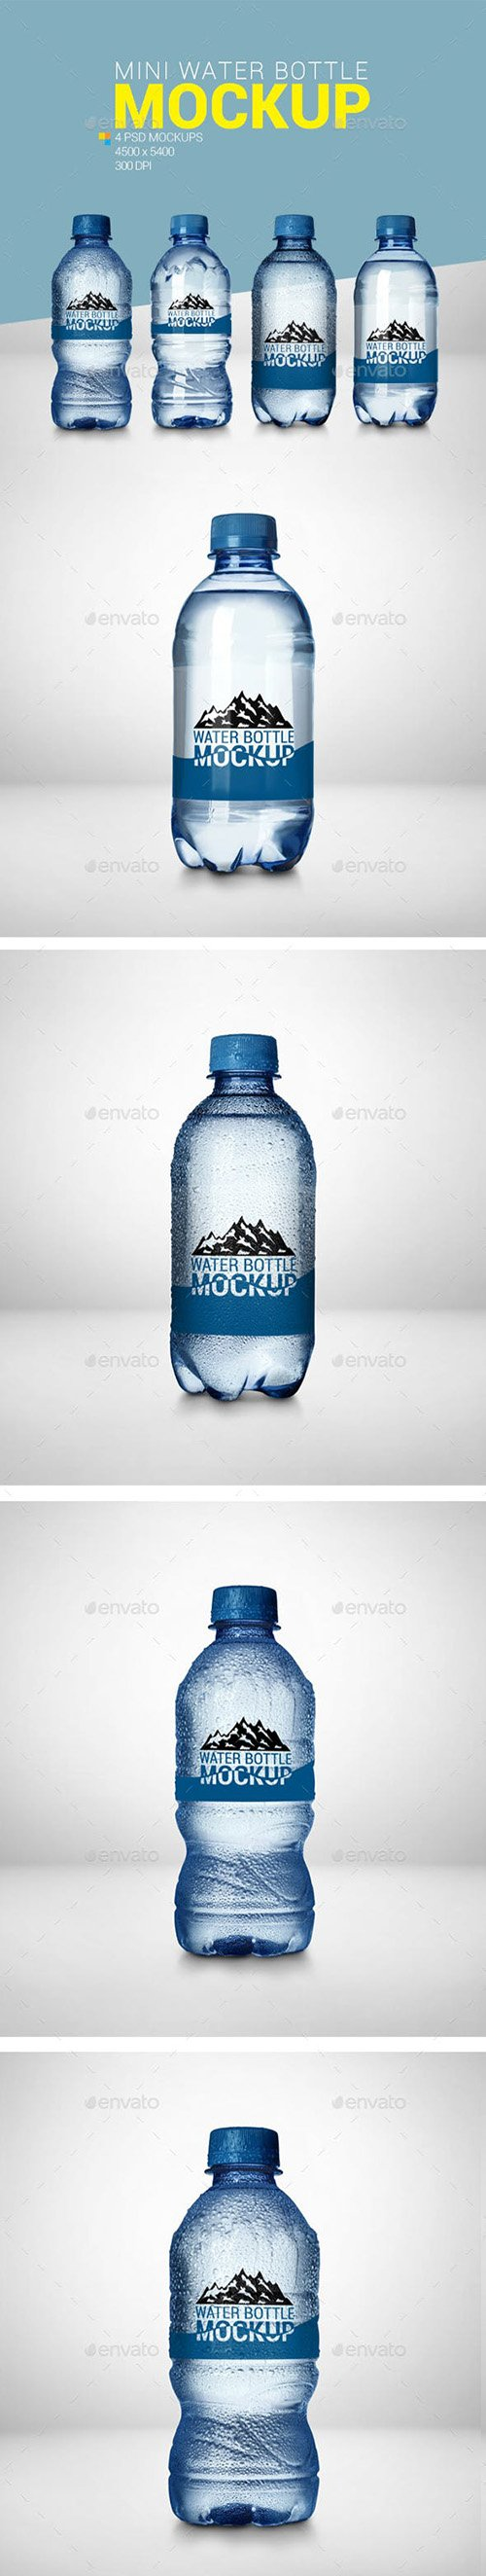 GR - 4 Mini Water Bottle Mockup 23080601